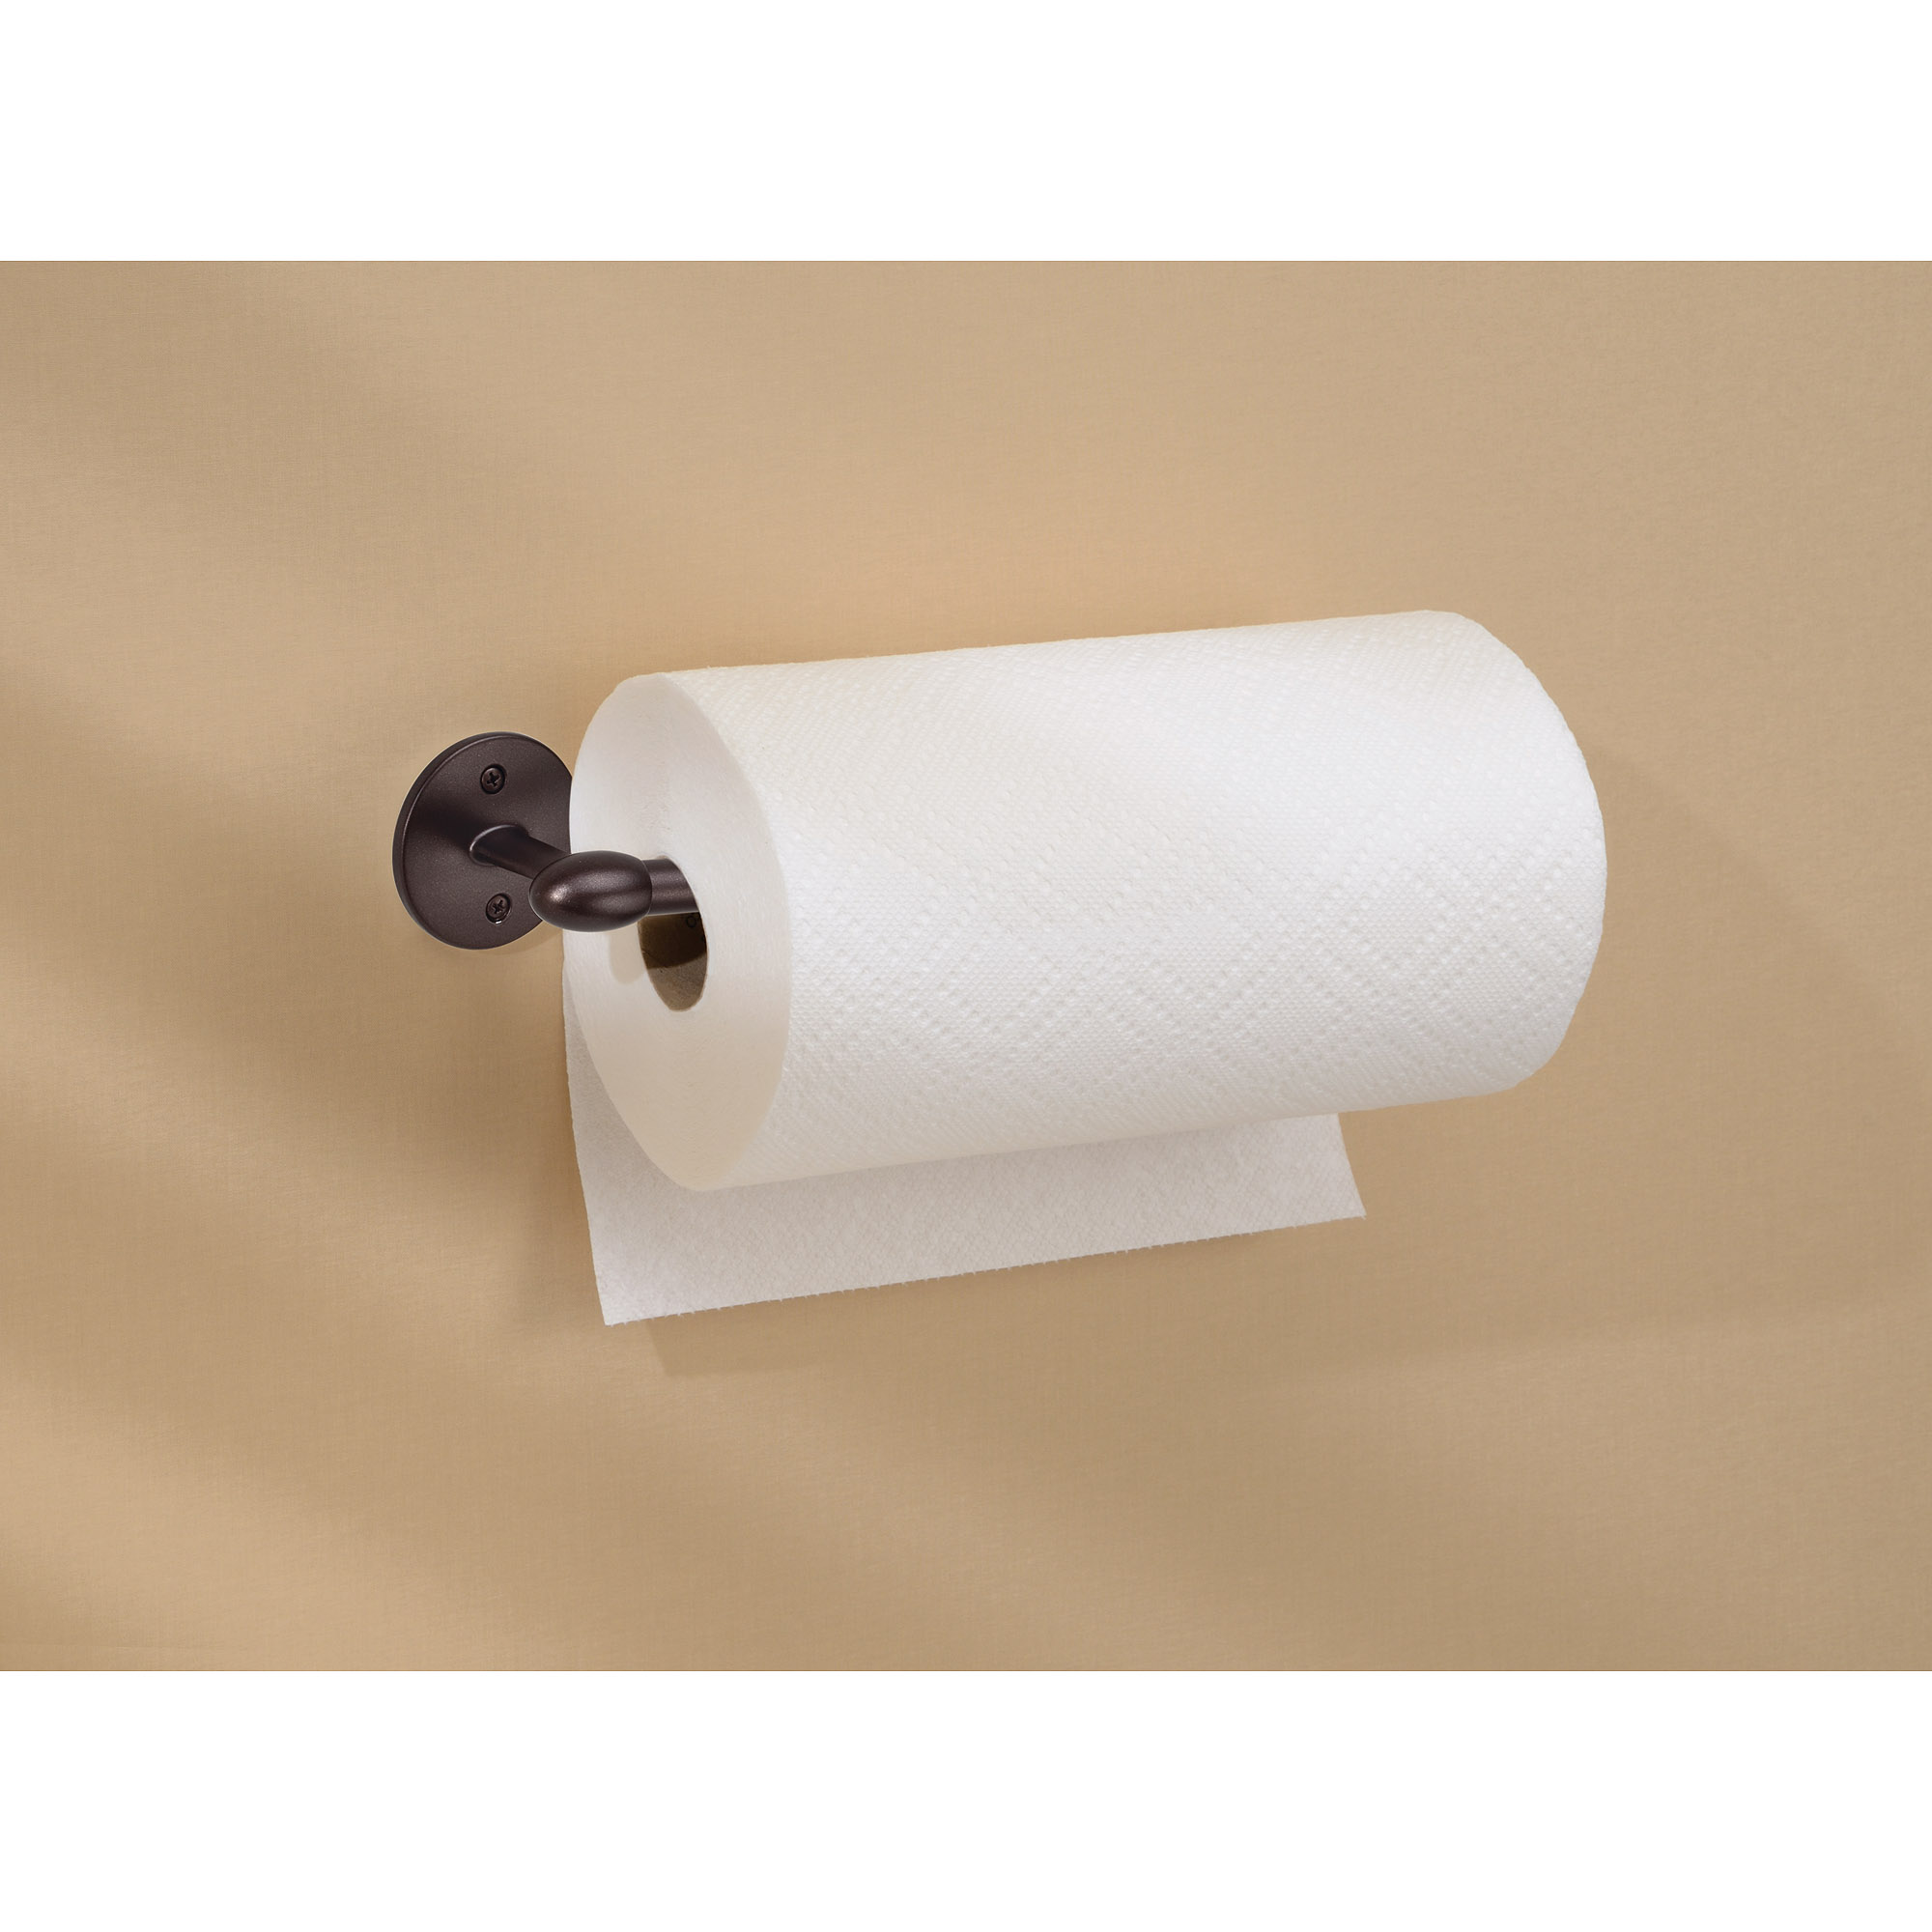 Wall Mount Paper Towel Holder orbinni wall mounted paper towel holder - walmart